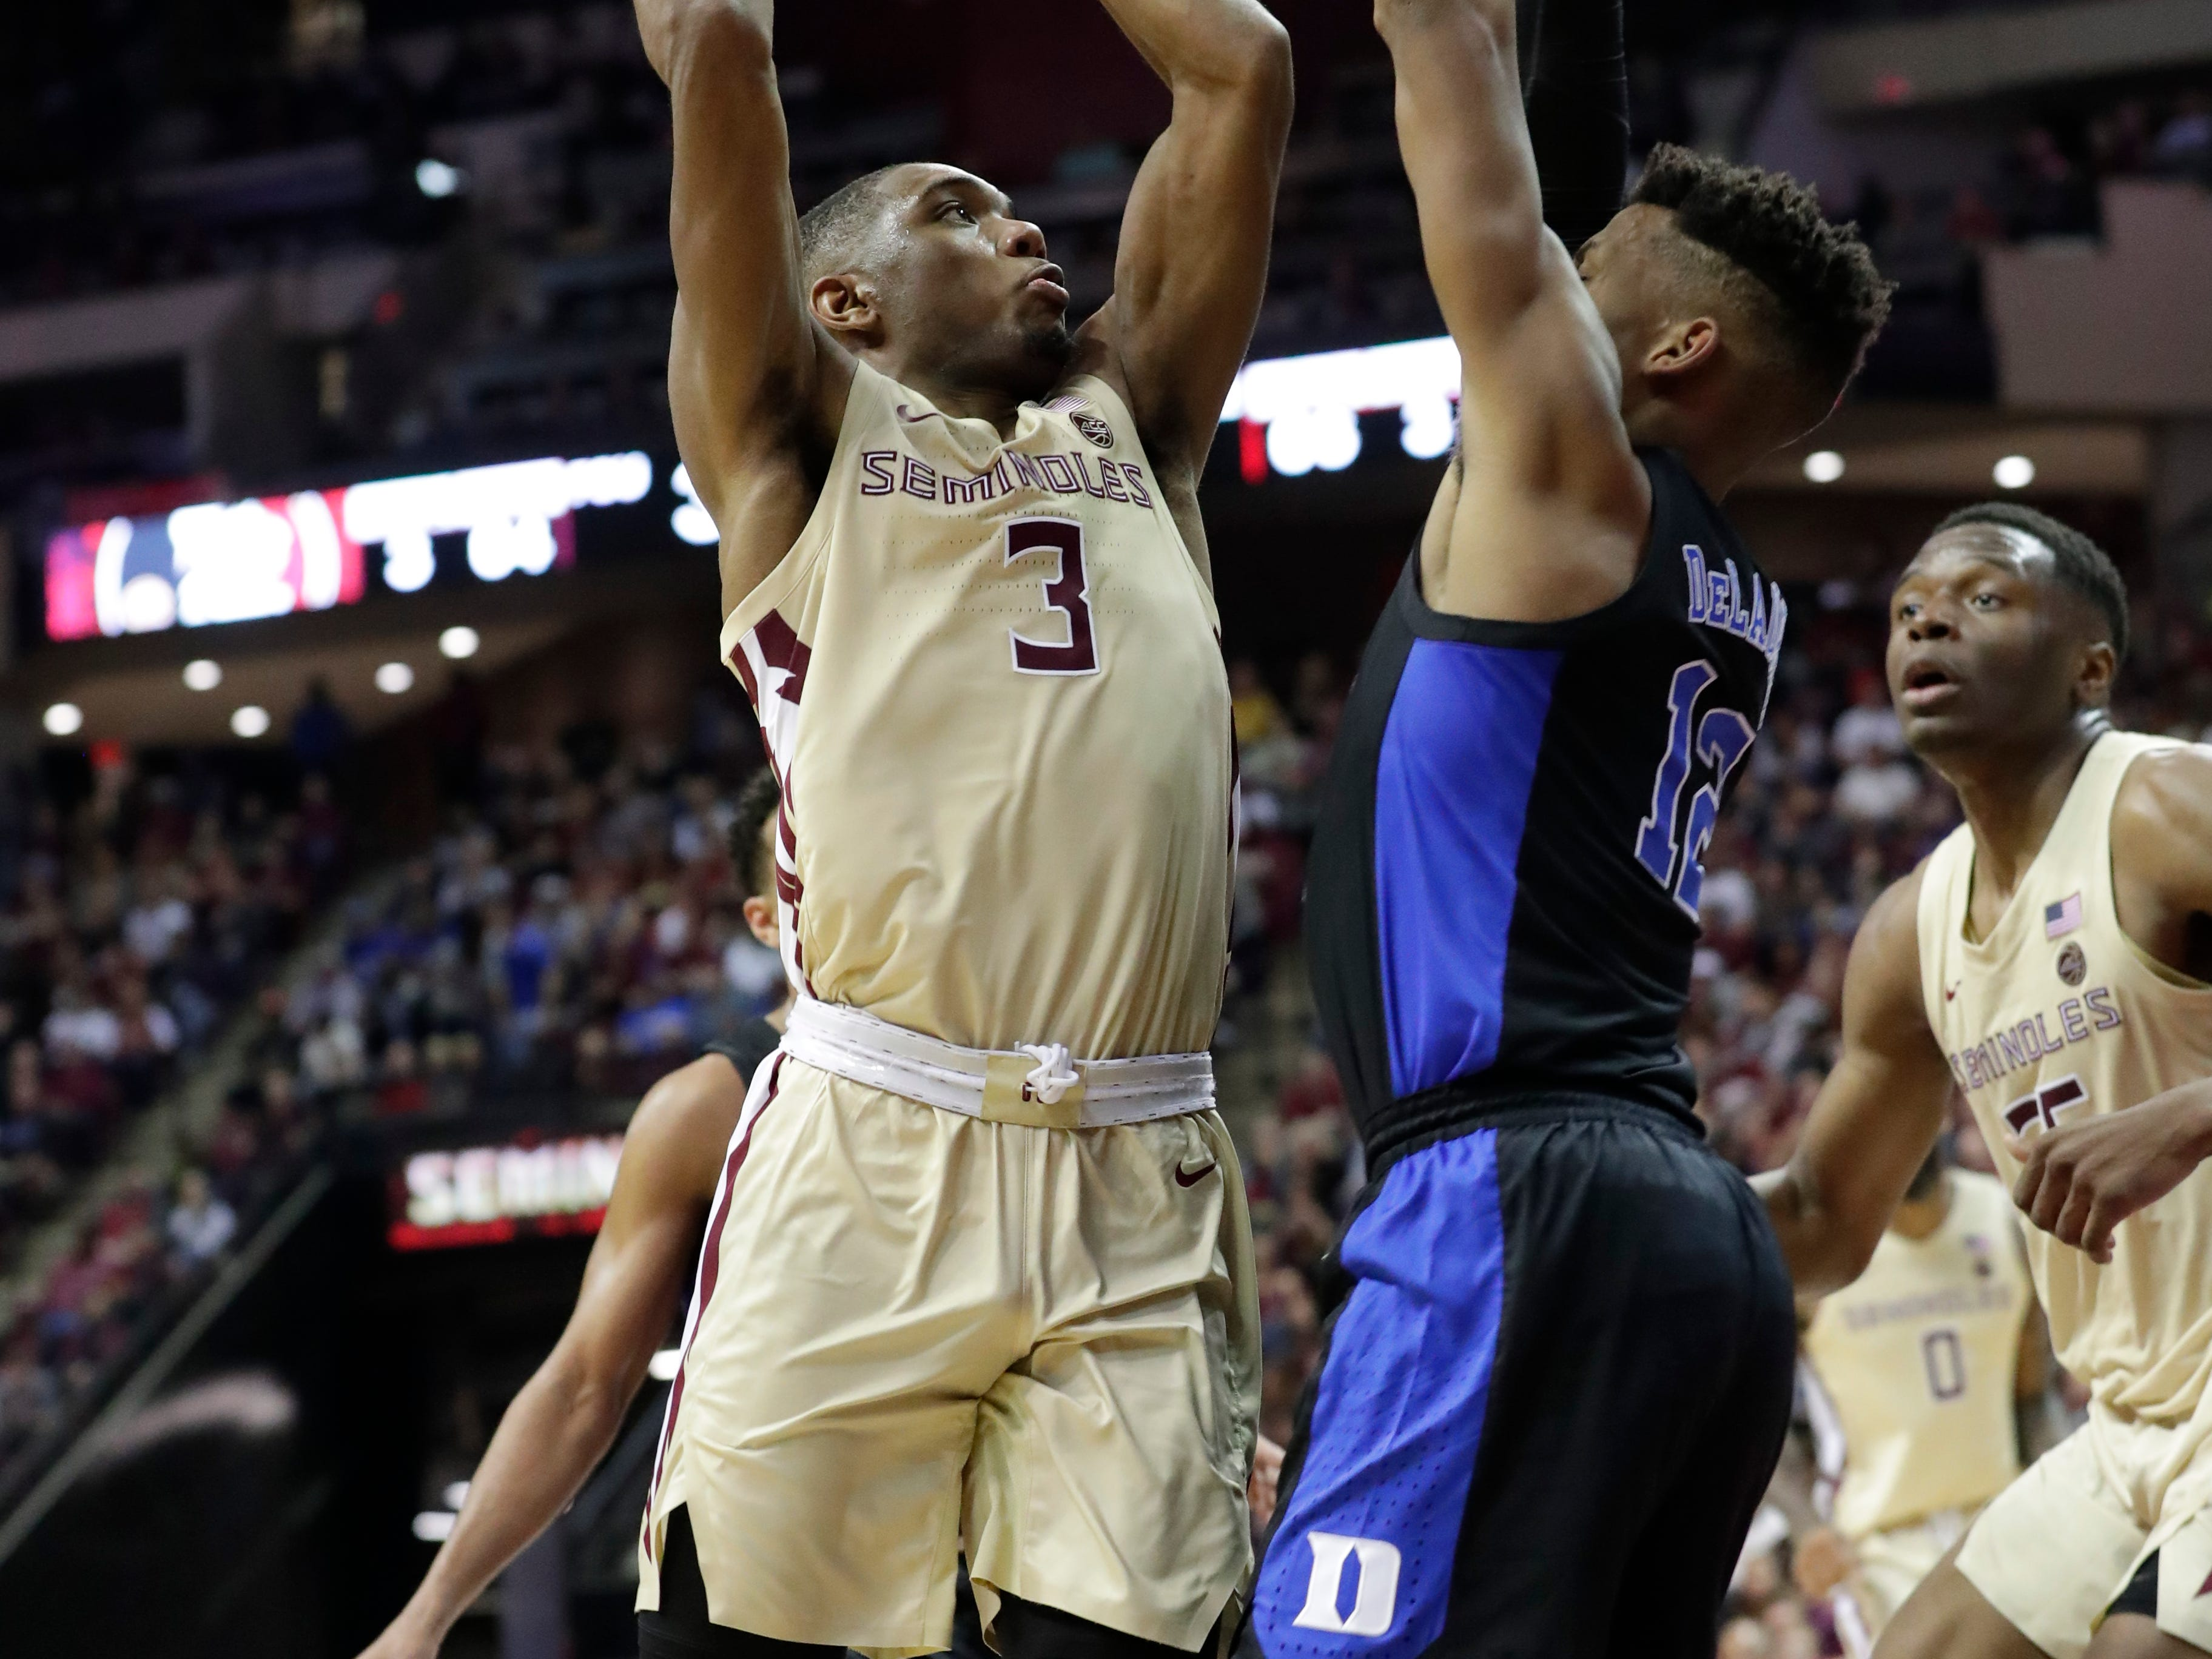 Florida State Seminoles guard Trent Forrest (3) shoots from inside the paint over Duke Blue Devils forward Javin DeLaurier (12). Ranked 13 in the ACC, the Florida State Seminoles host the number 1 team, the Duke Blue Devils, at the Tucker Civic Center, Saturday, Jan. 12, 2019.